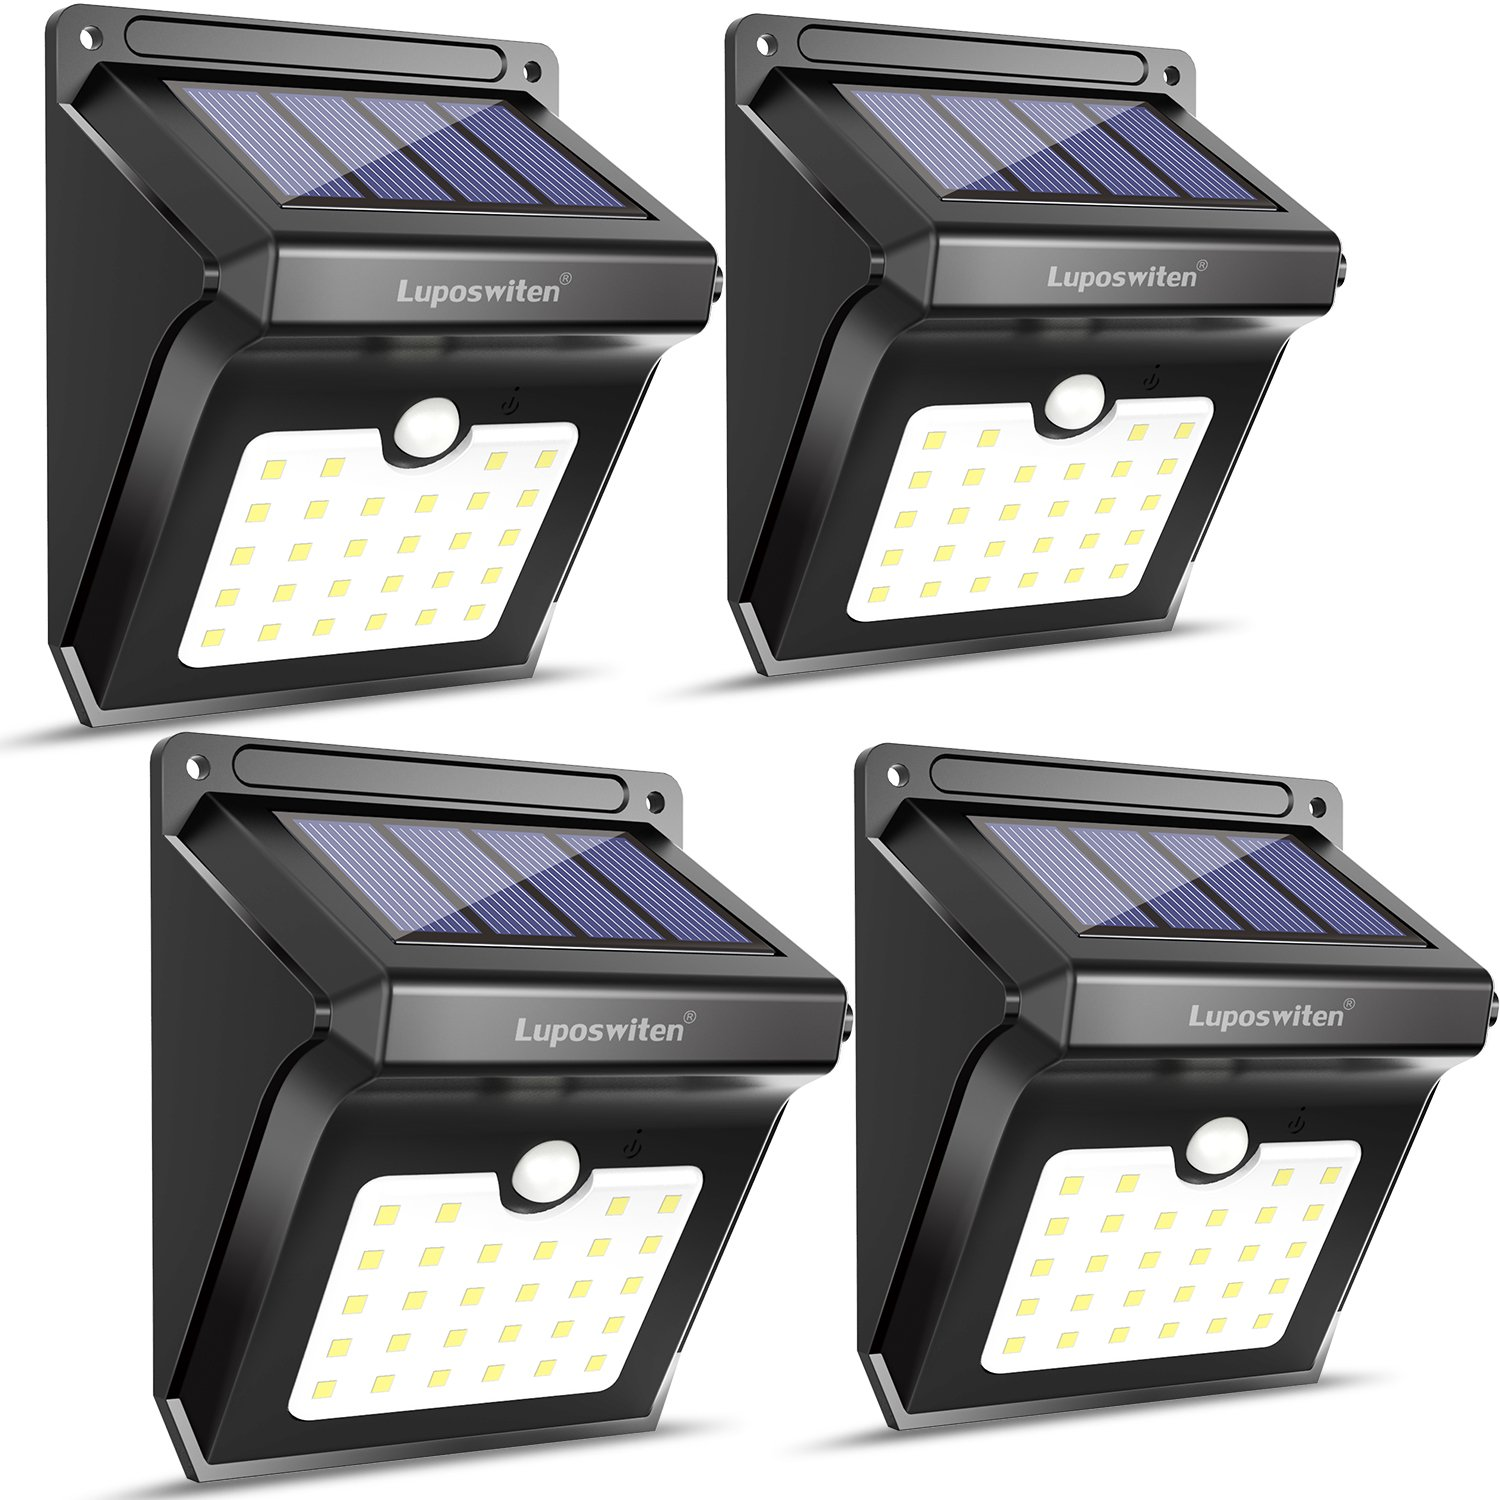 28 LEDs Solar Lights Outdoor, Luposwiten Solar Motion Sensor Lights Wireless Security Lights, 400 Lumen Waterproof Solar Powered Lights for Steps Yard Garage Porch Patio(4-Pack)